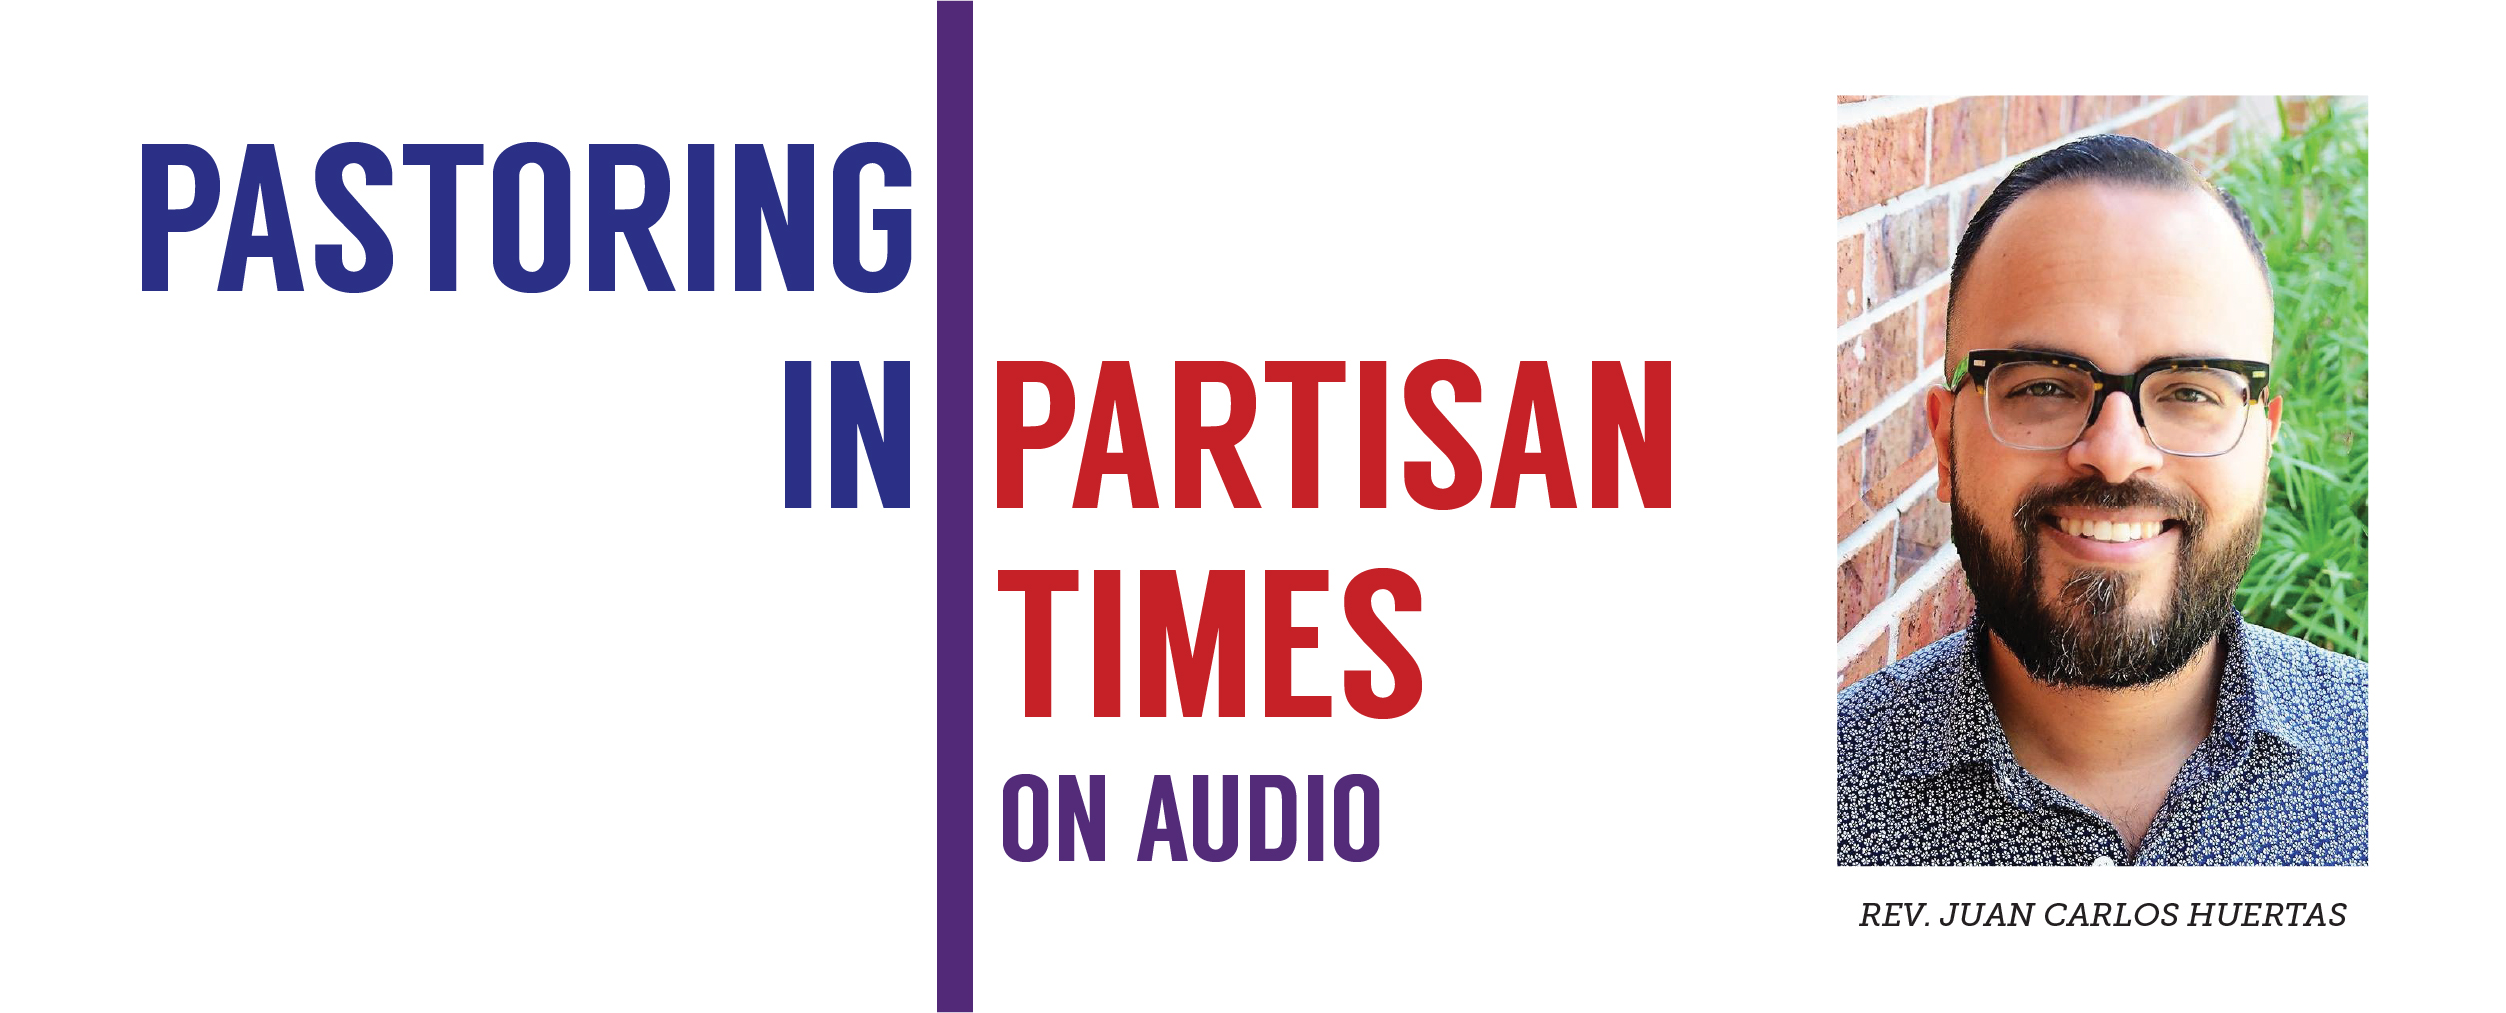 Pastoring In Partisan Times Podcast: Social Media and the Public Square with Rev. Juan Carlos Huertas